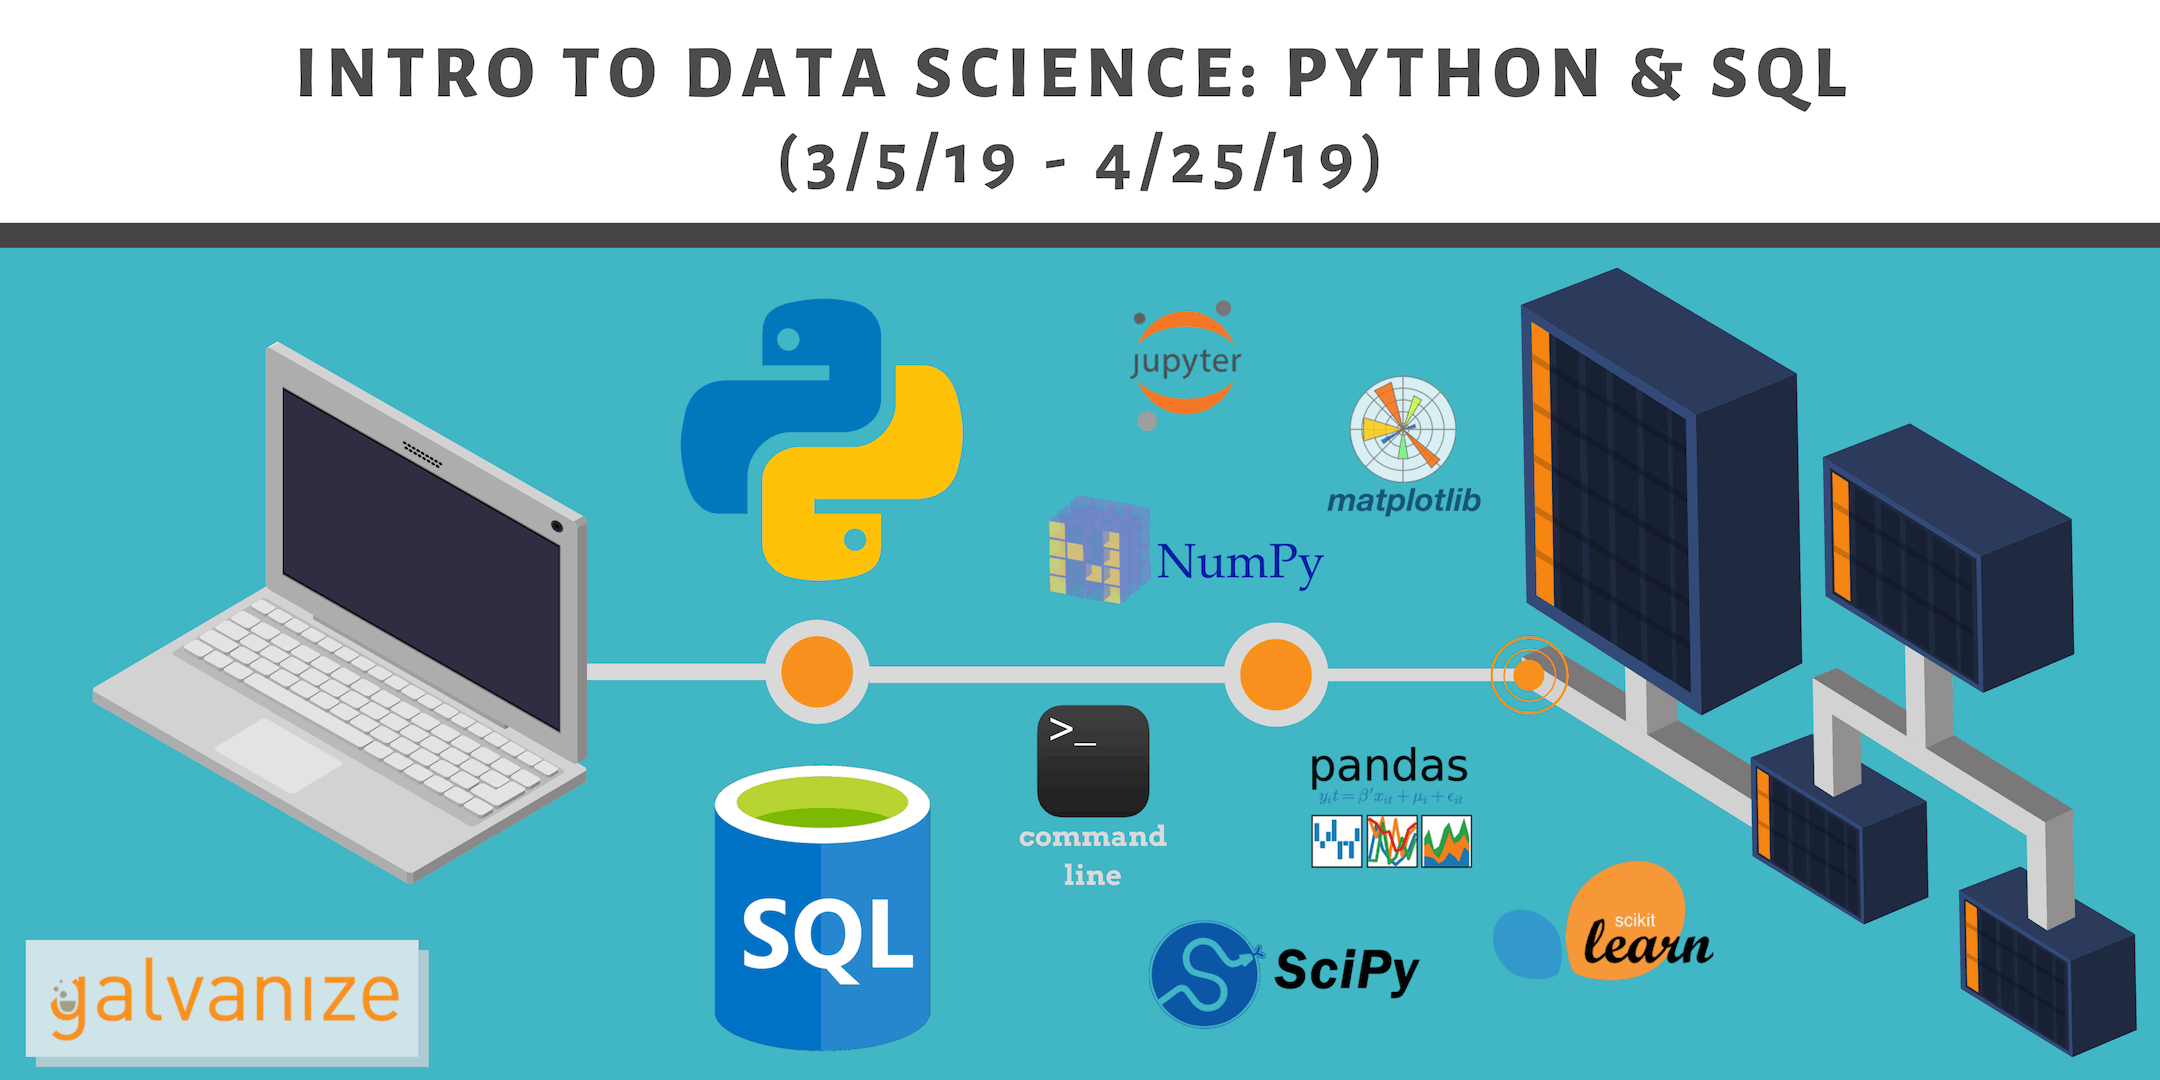 Intro to Data Science: Python and SQL (3/5/19 - 4/25/19)